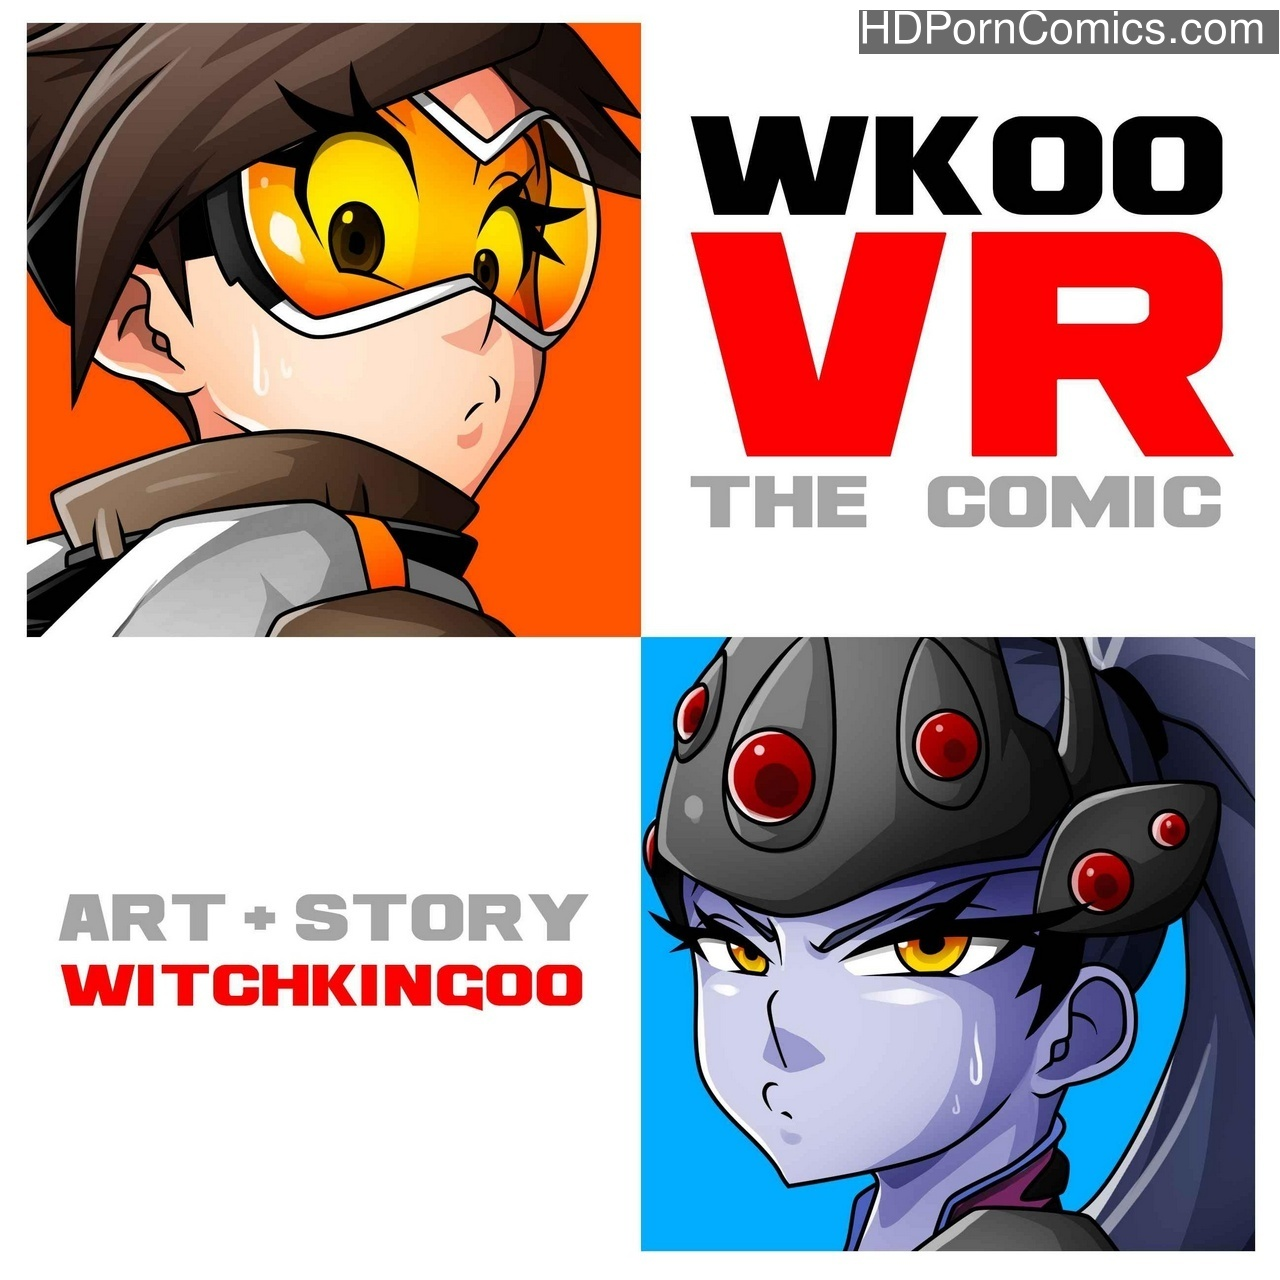 VR-The-Comic1 free sex comic